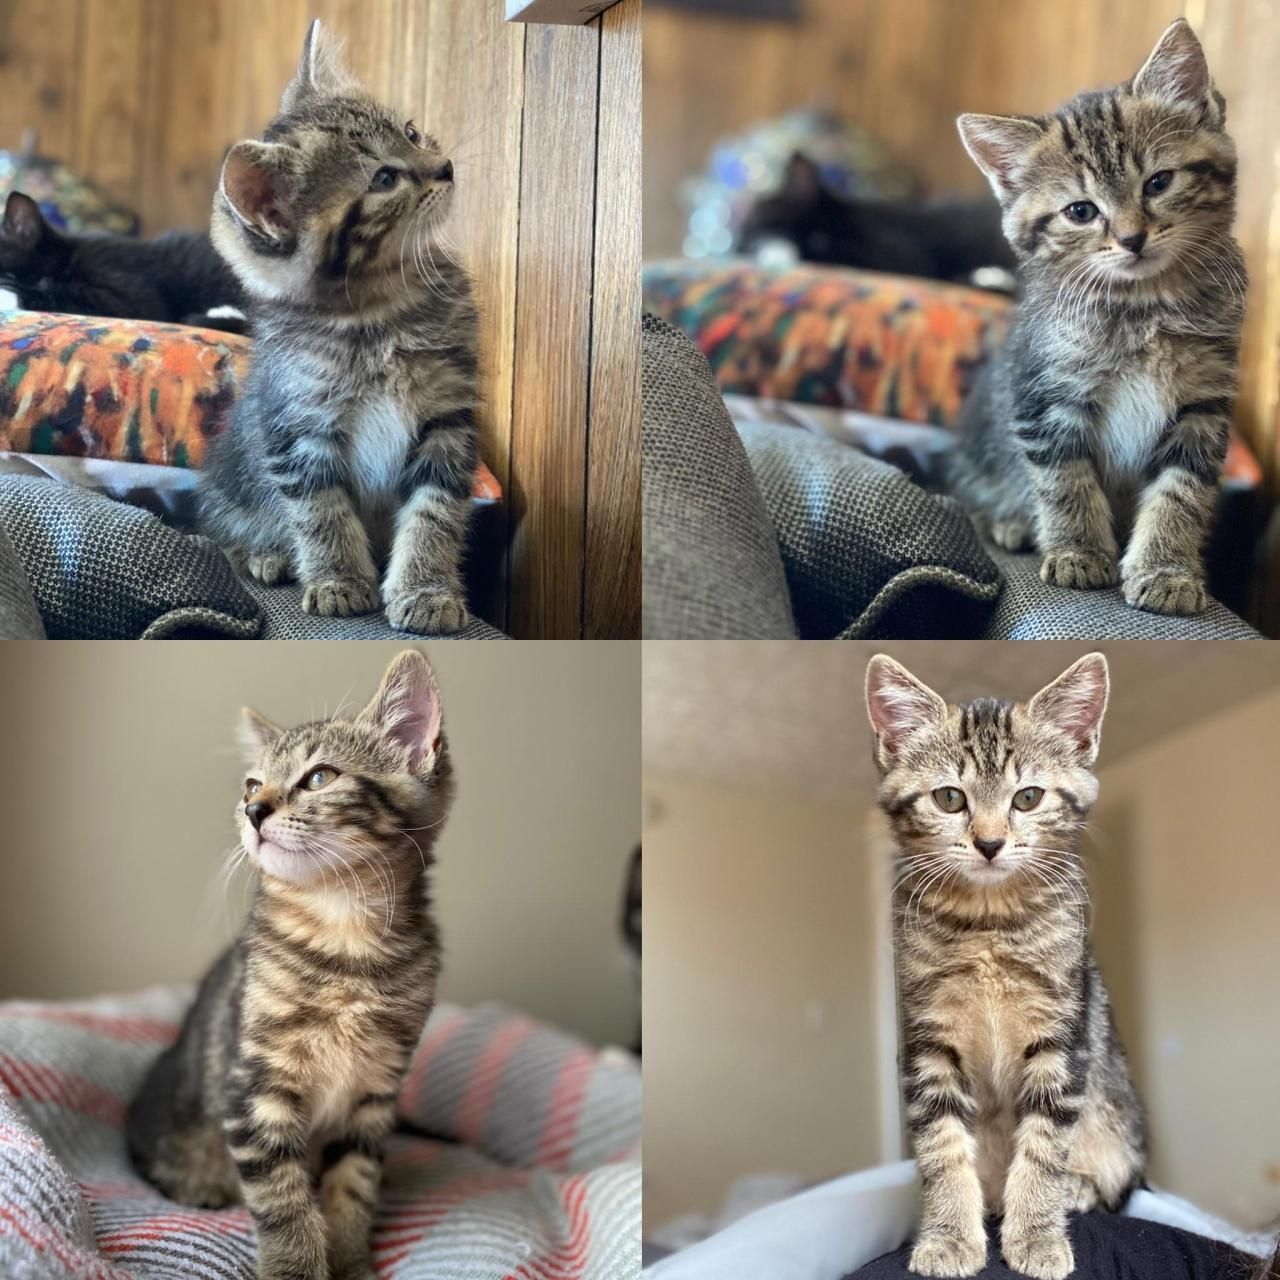 8 Weeks To 12 Weeks Please Stop Growing Submit Your Cute Pet Here Source Https Bit Ly 3gbsfog In 2020 Kitten Adoption Cat Post Diy Dog Stuff